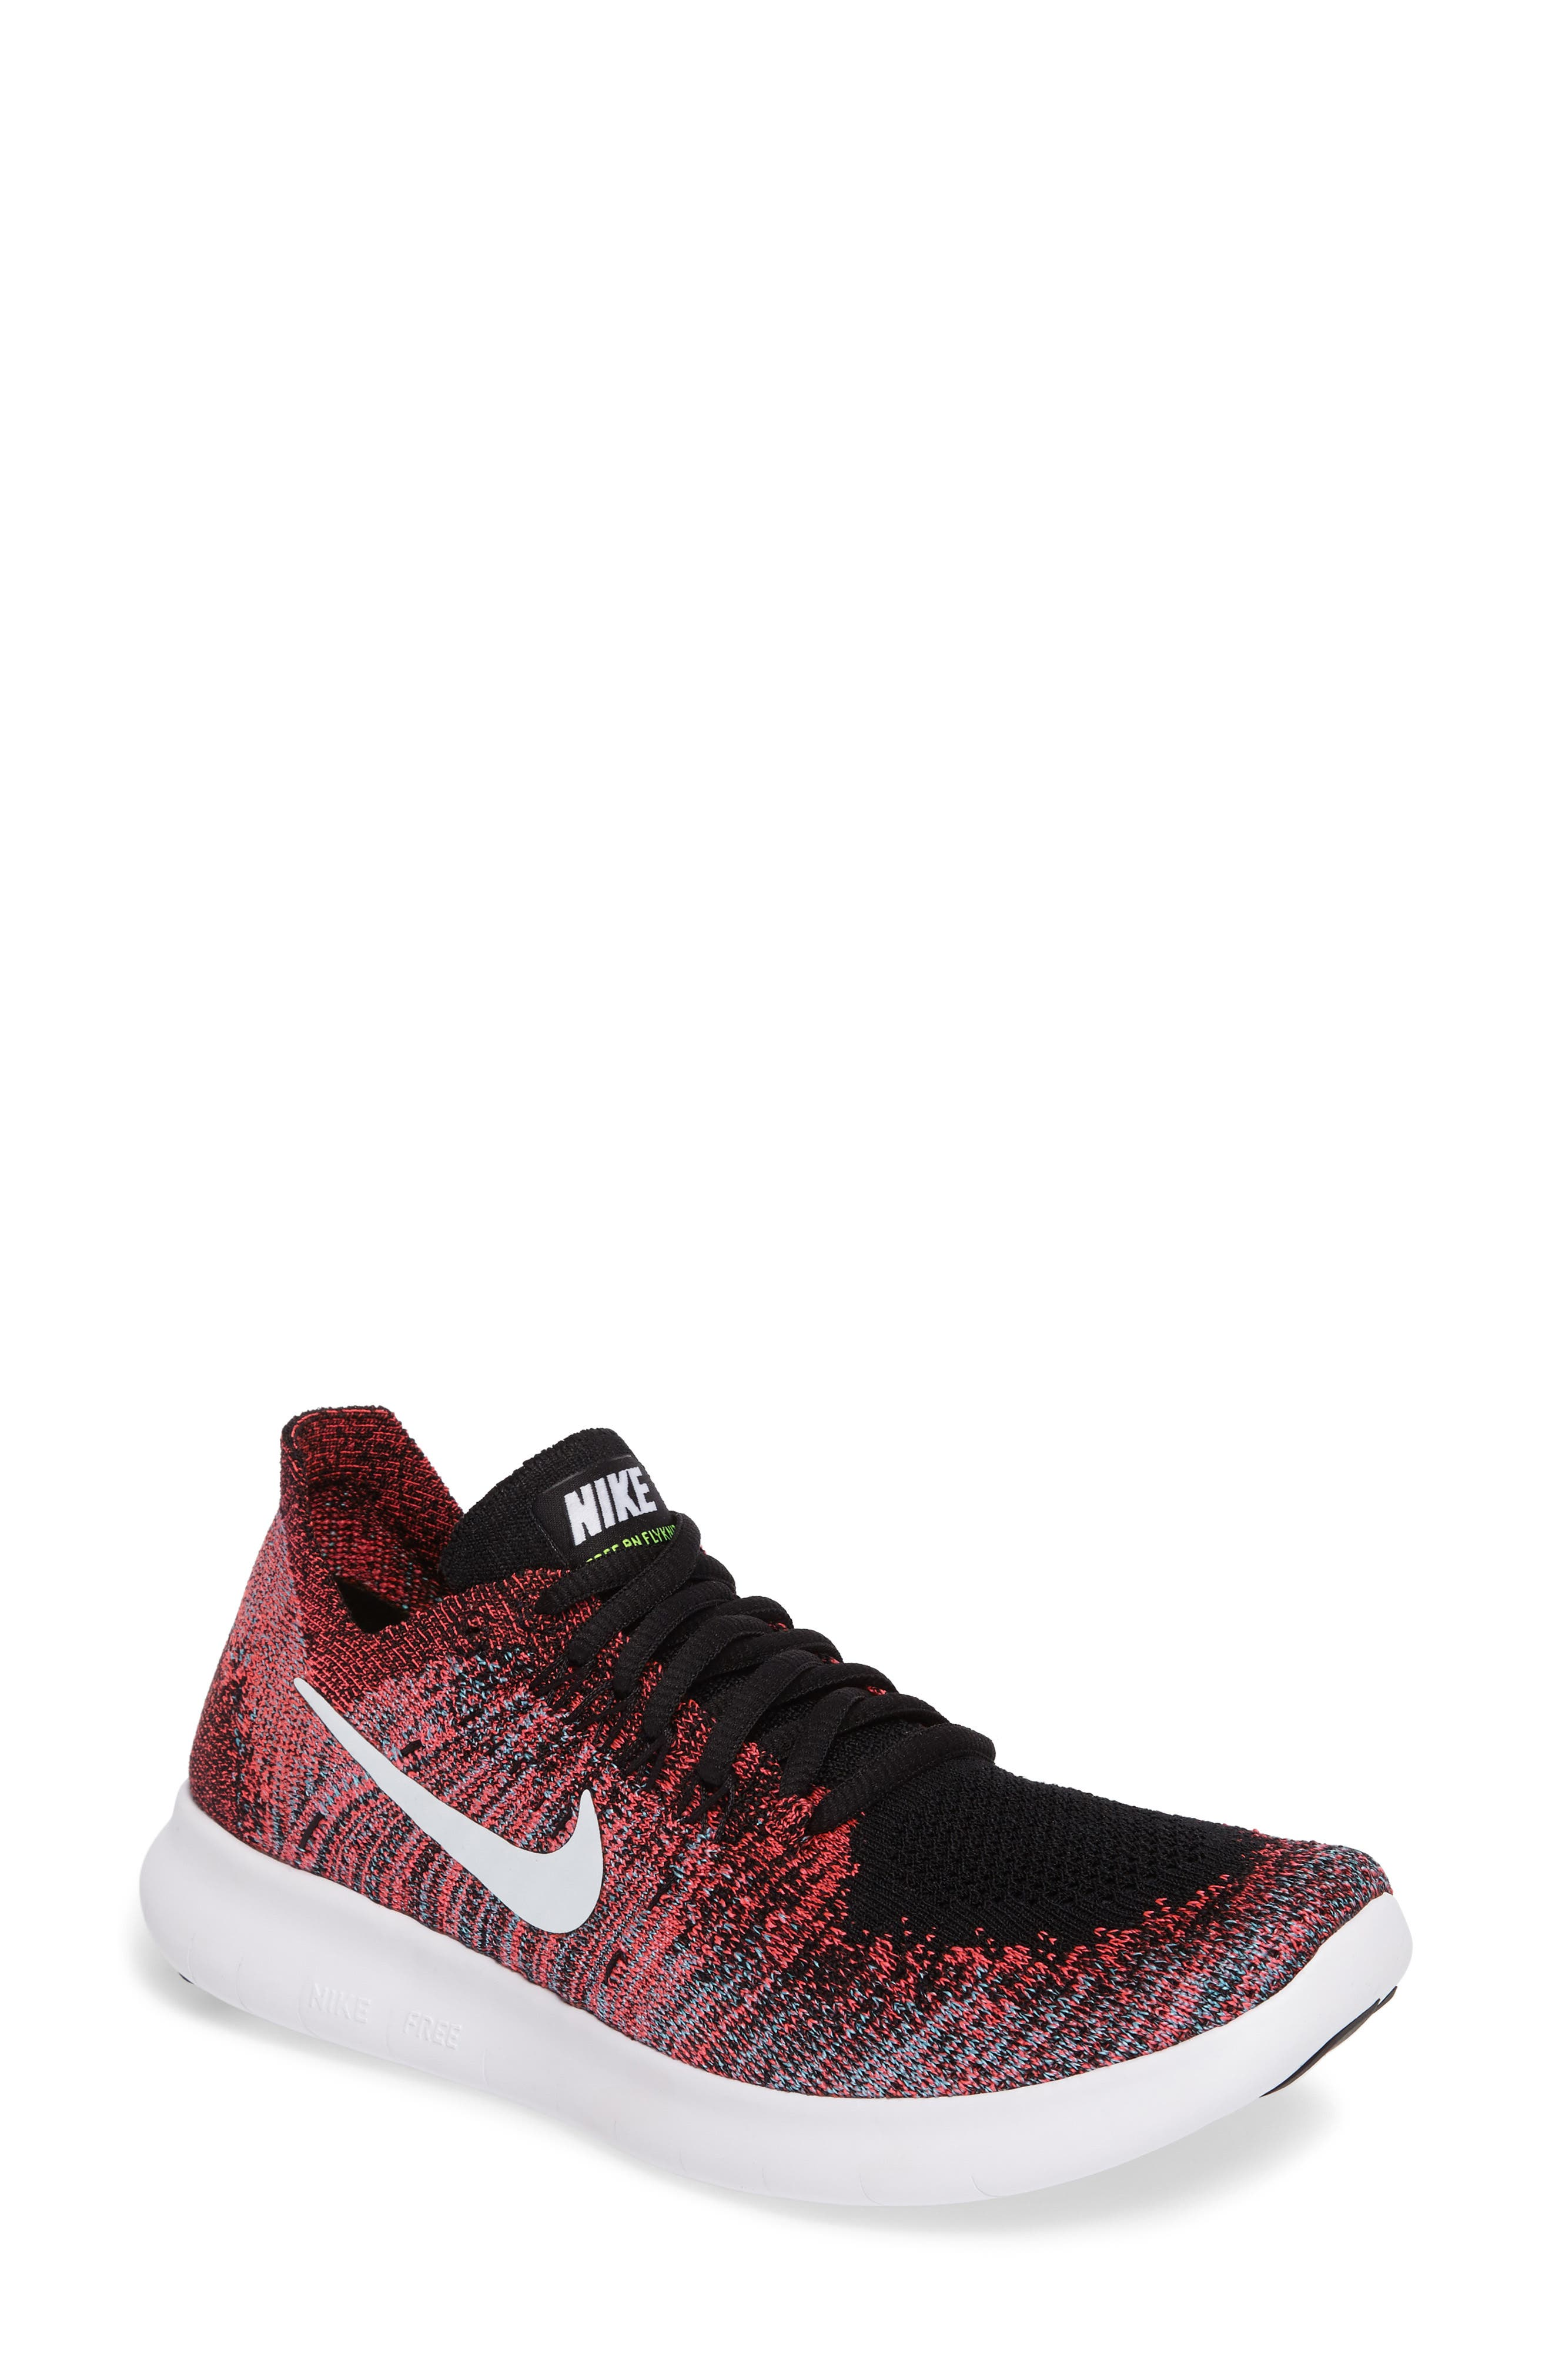 Nike Free Run Flyknit 2 Running Shoe (Women)